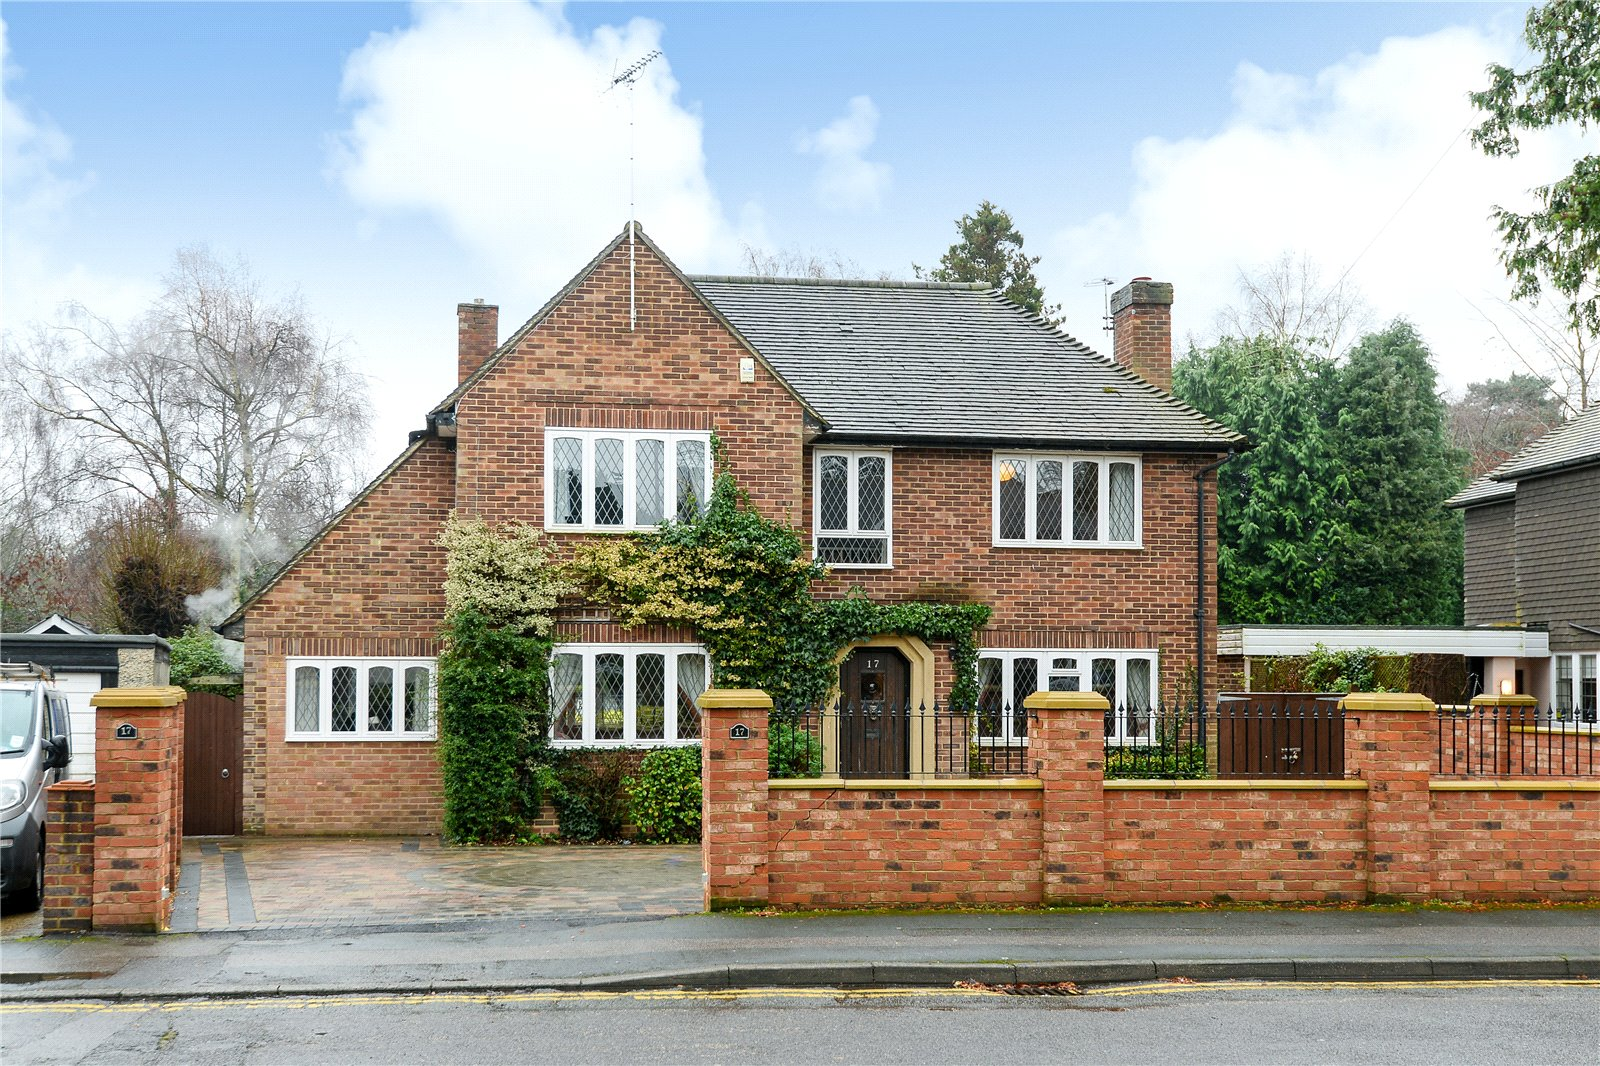 5 Bedrooms Detached House for sale in Firwood Drive, Camberley, Surrey, GU15